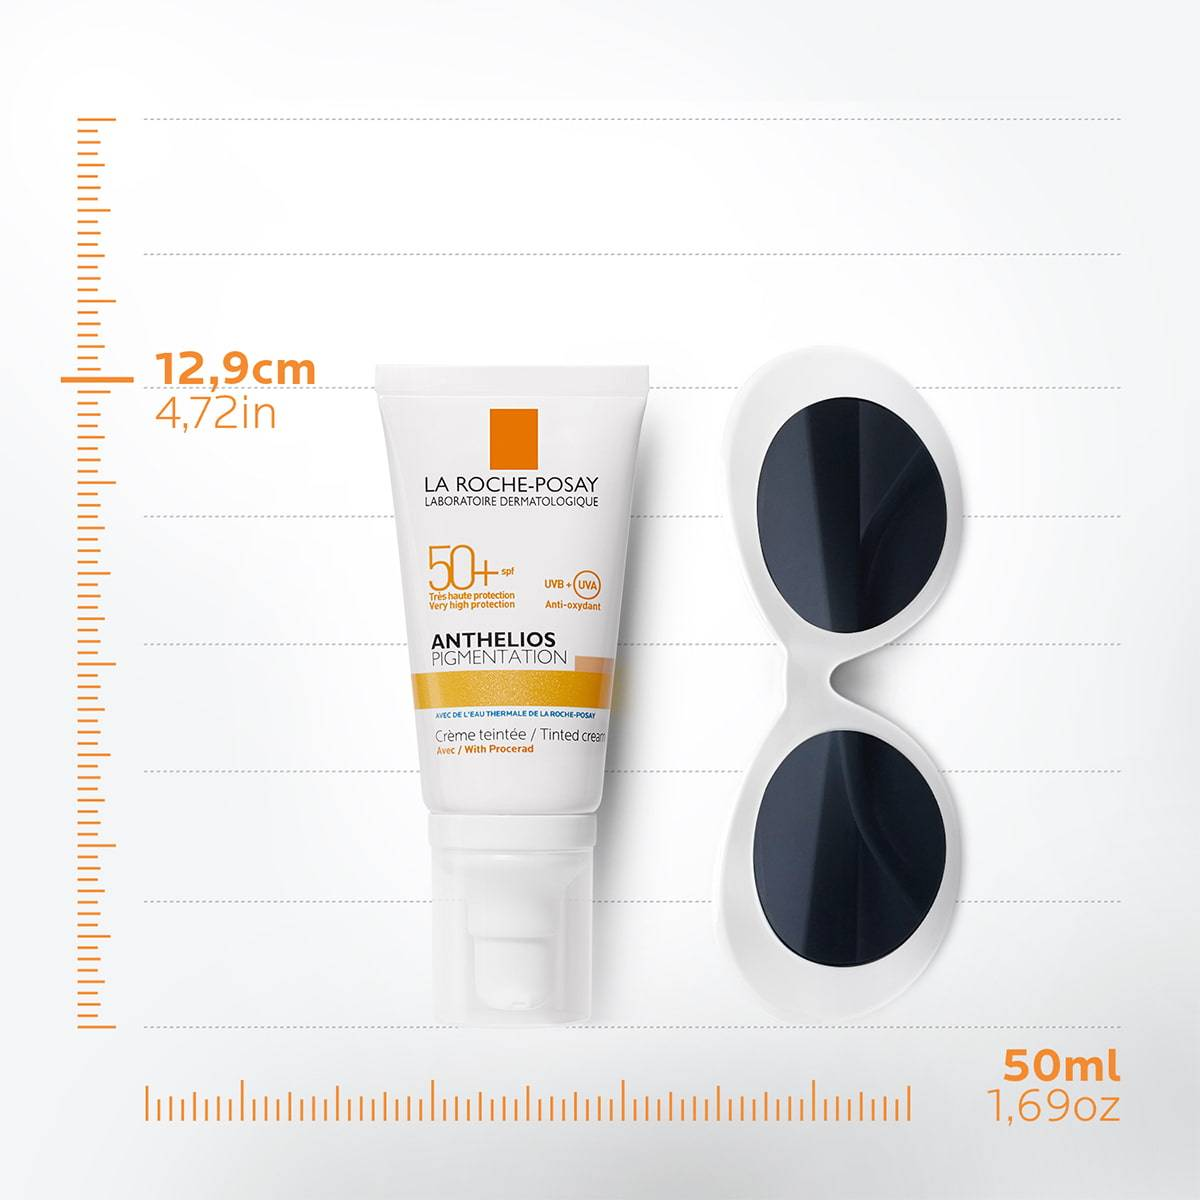 La Roche Posay ProductPage Sun Anthelios Pigmentation Tinted Cream Spf